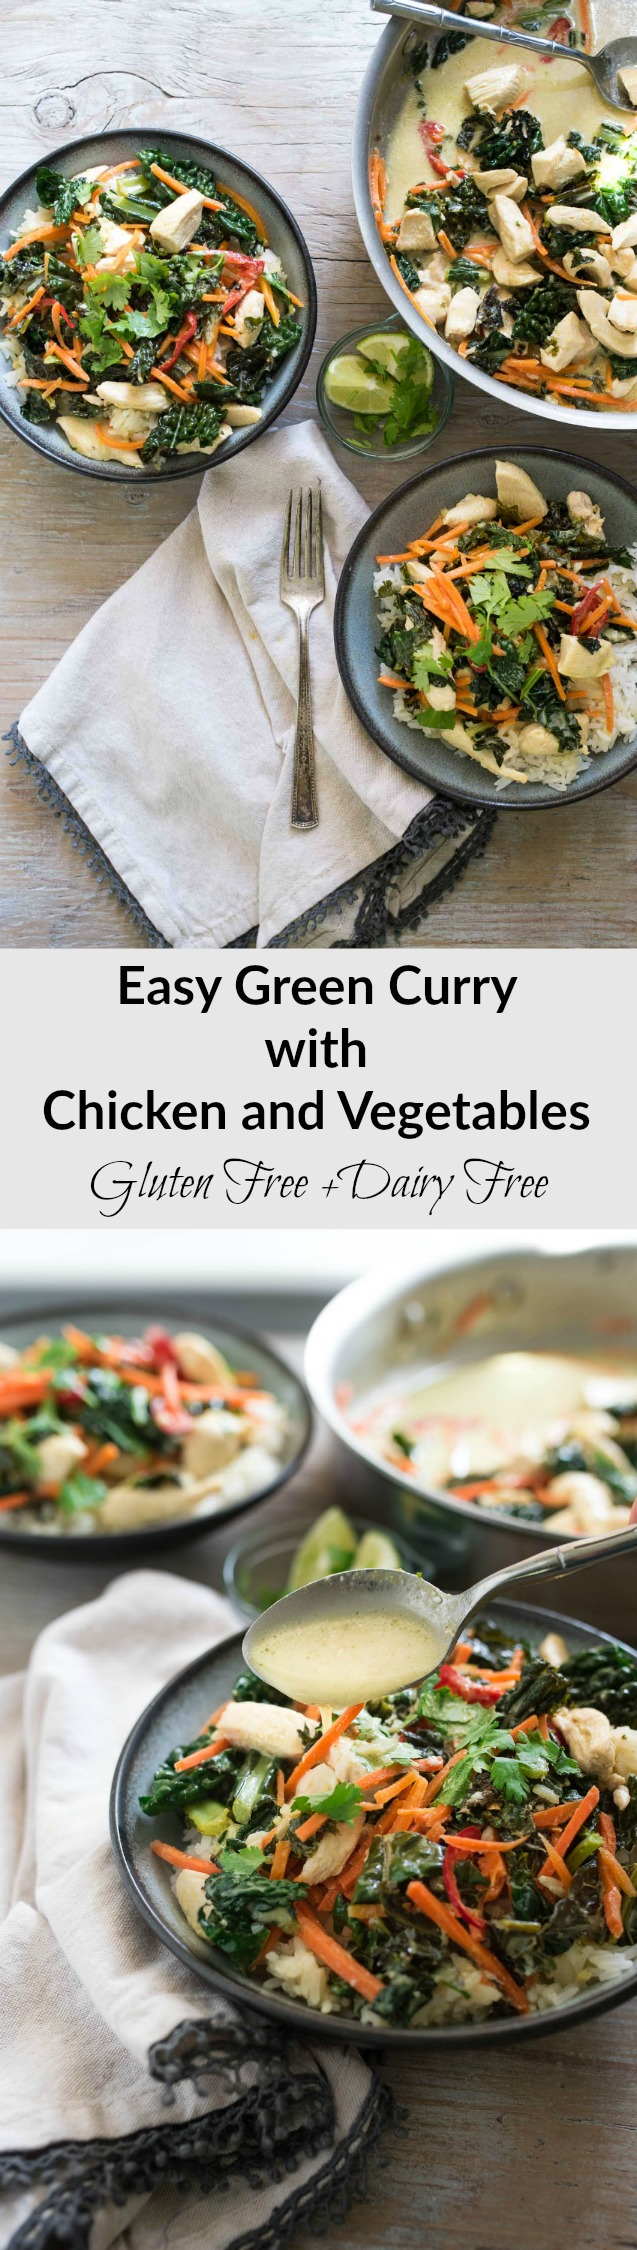 Ready in under 30- forget take out, try this naturally gluten and dairy free easy Green Curry with Chicken and Vegetables